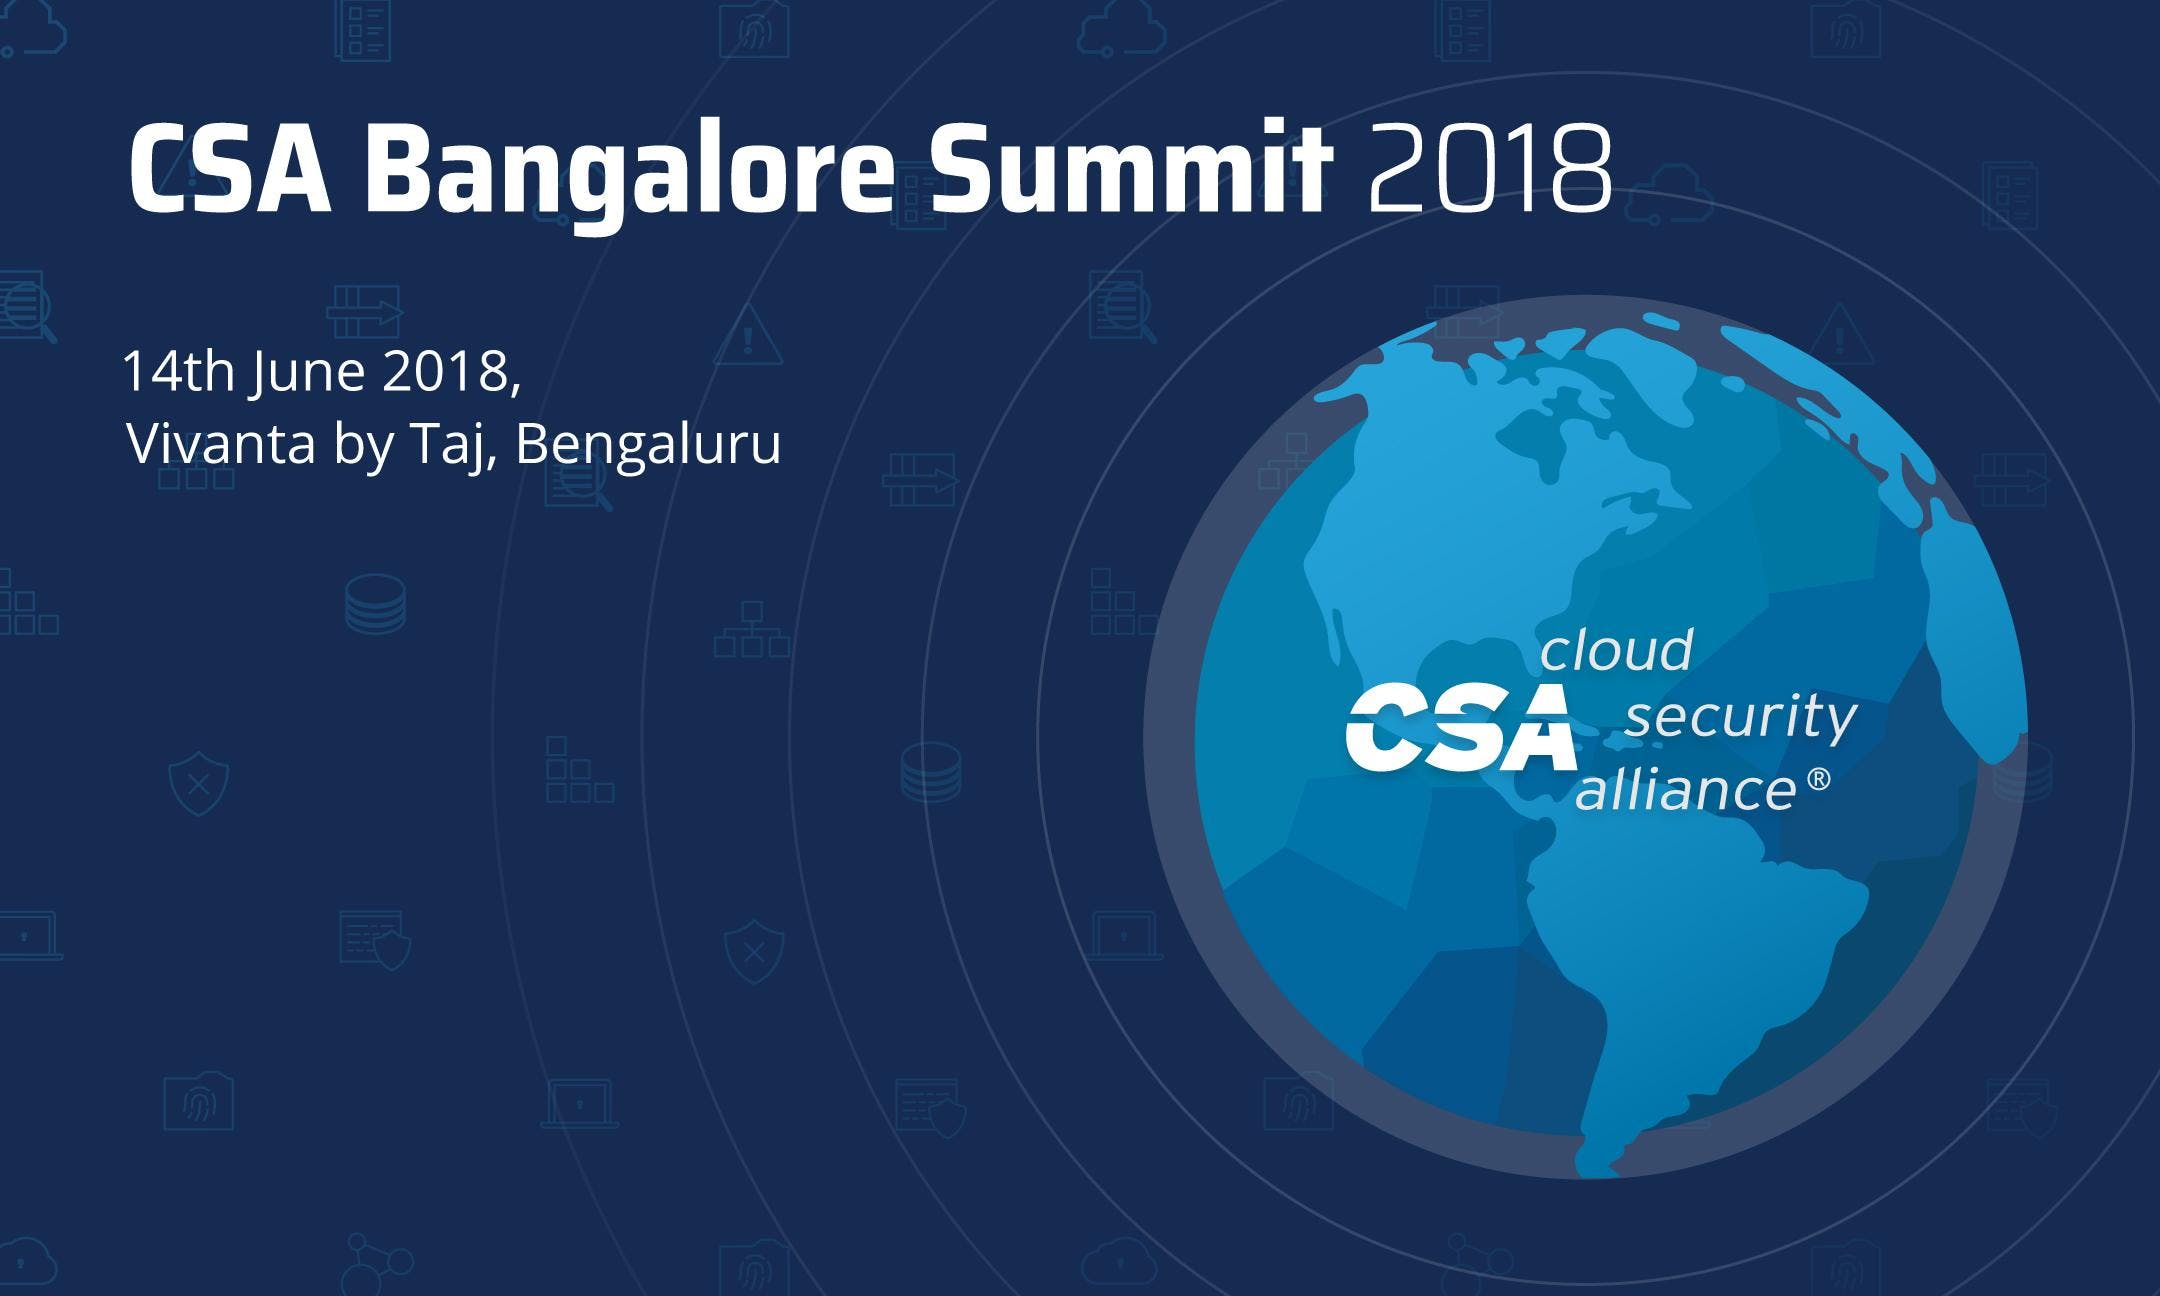 CSA Bangalore Summit